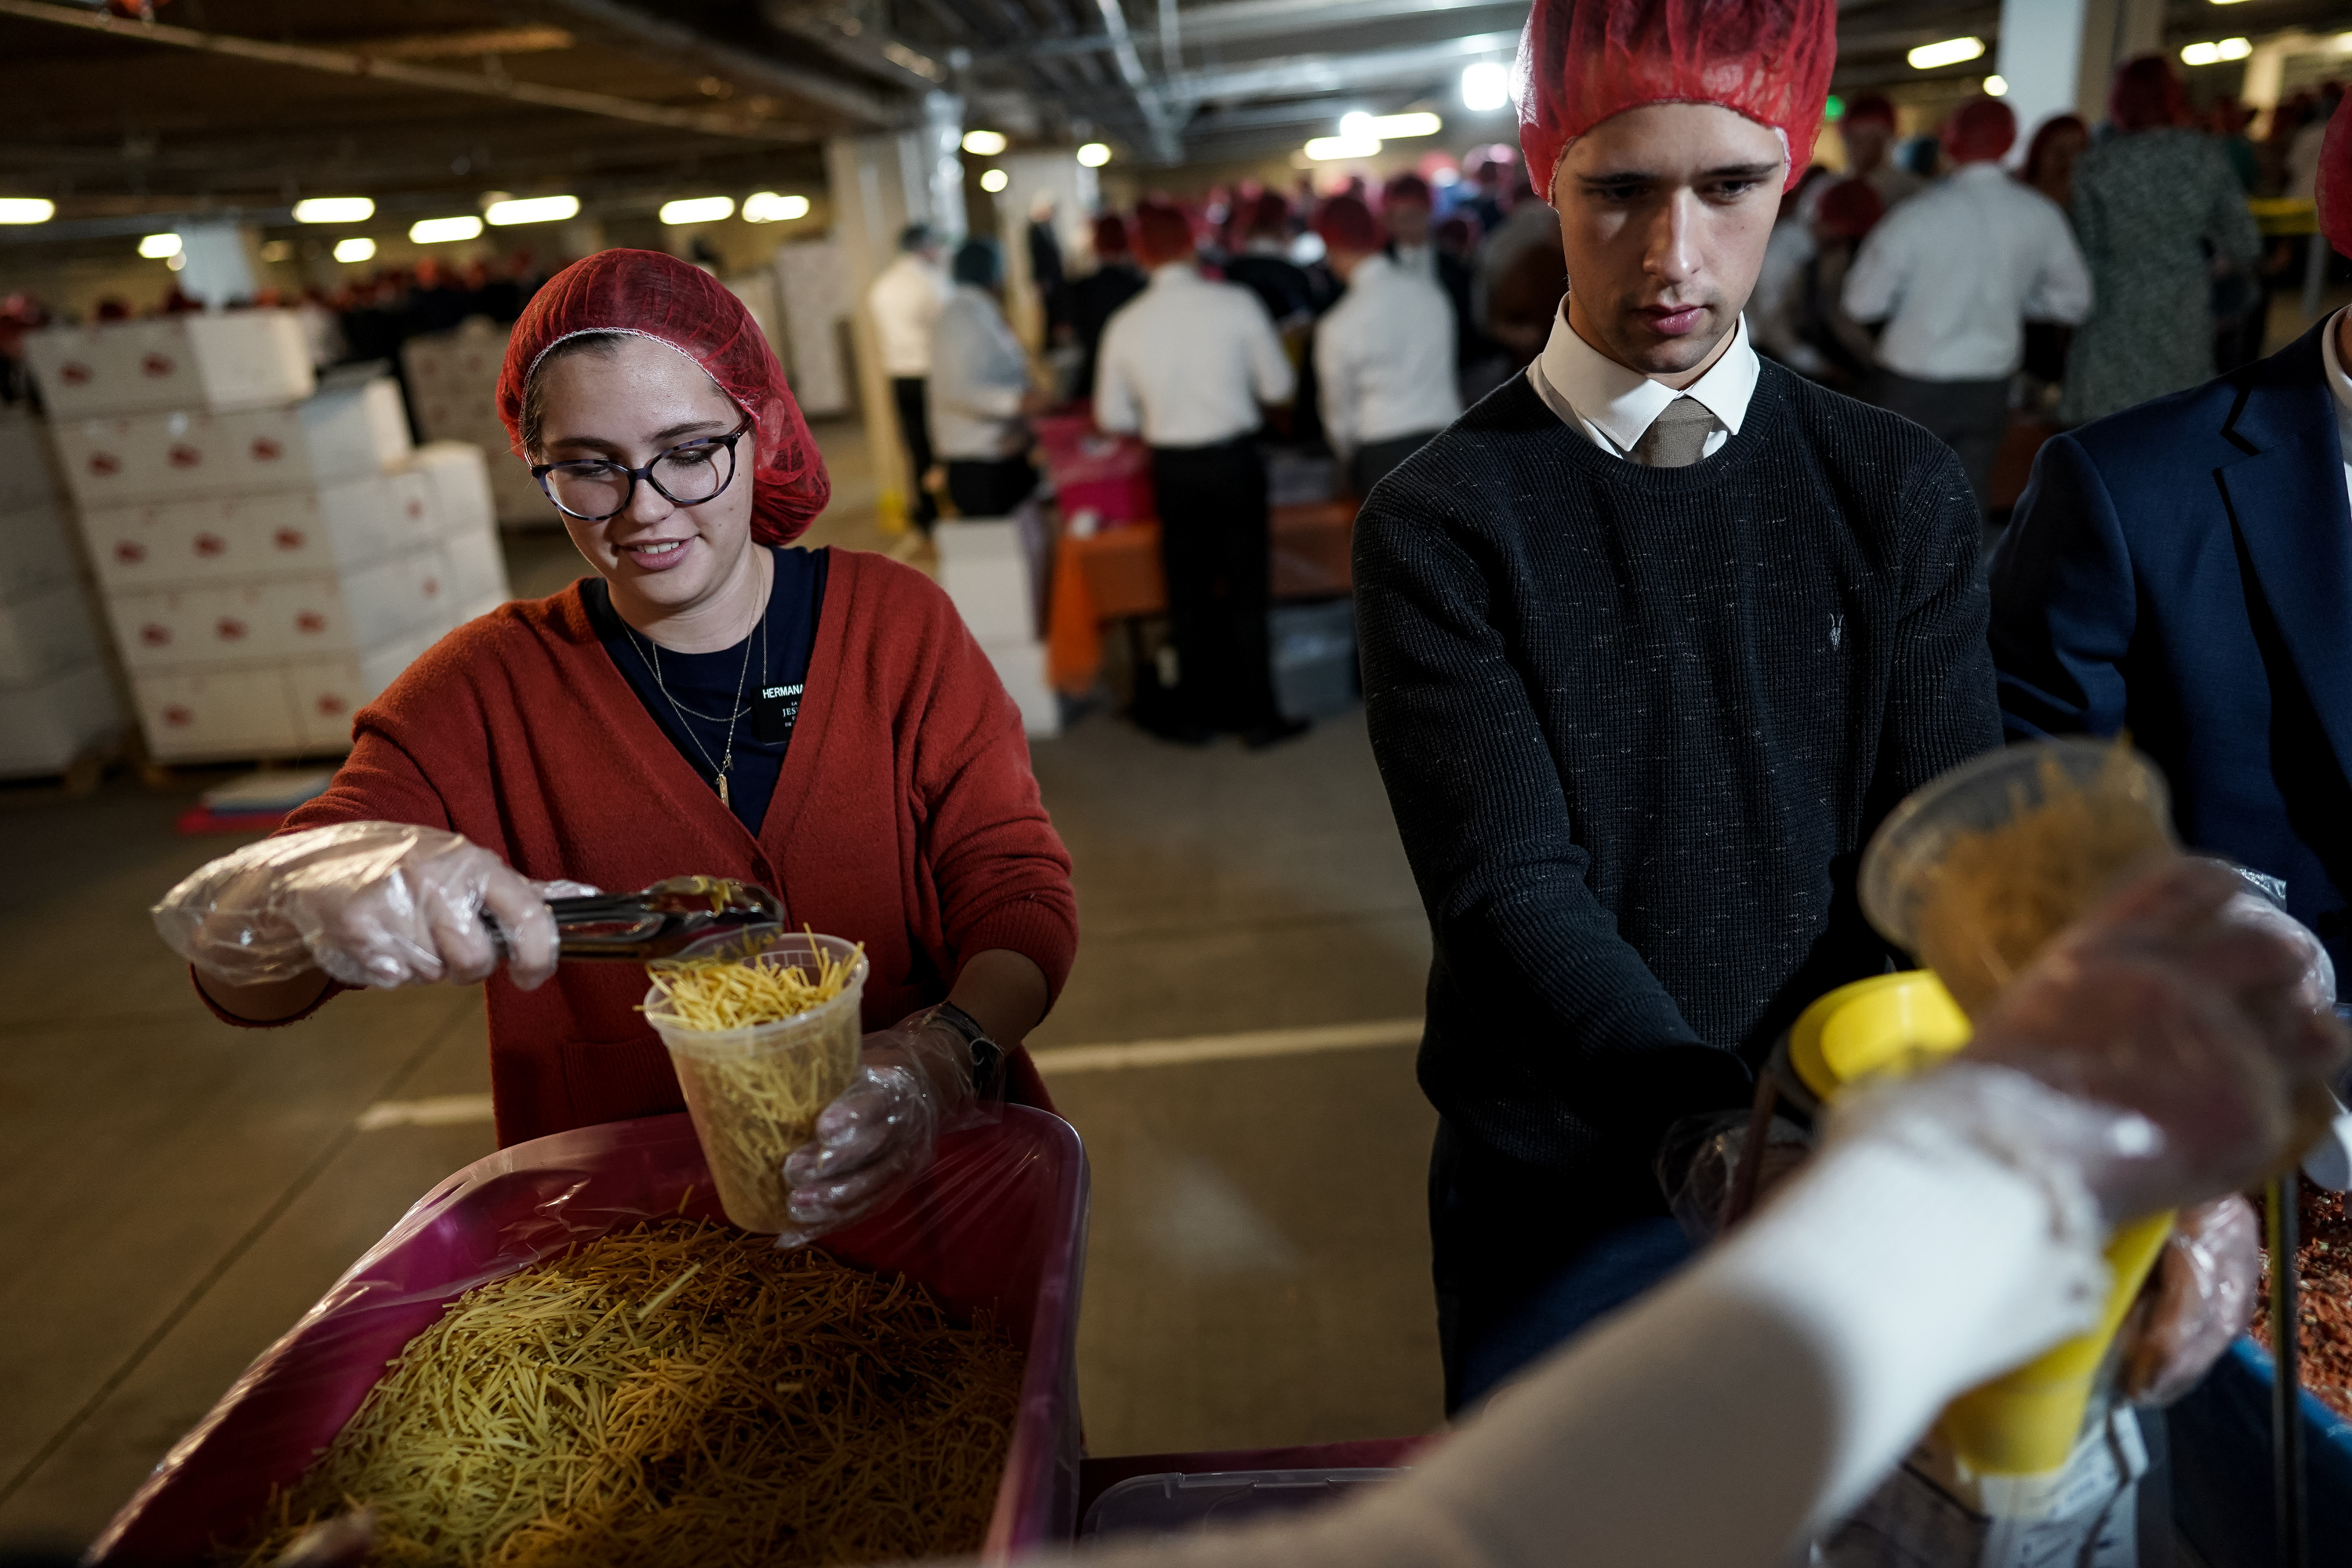 Sister Isabel Galland, 21, of Orem, and Elder Joseph Cottam, 19, of Yorkshire, England, and other missionaries for The Church of Jesus Christ of Latter-day Saints prepare meal donations at the Missionary Training Center in Provo on Thanksgiving Day, Thursday, Nov. 28, 2019.